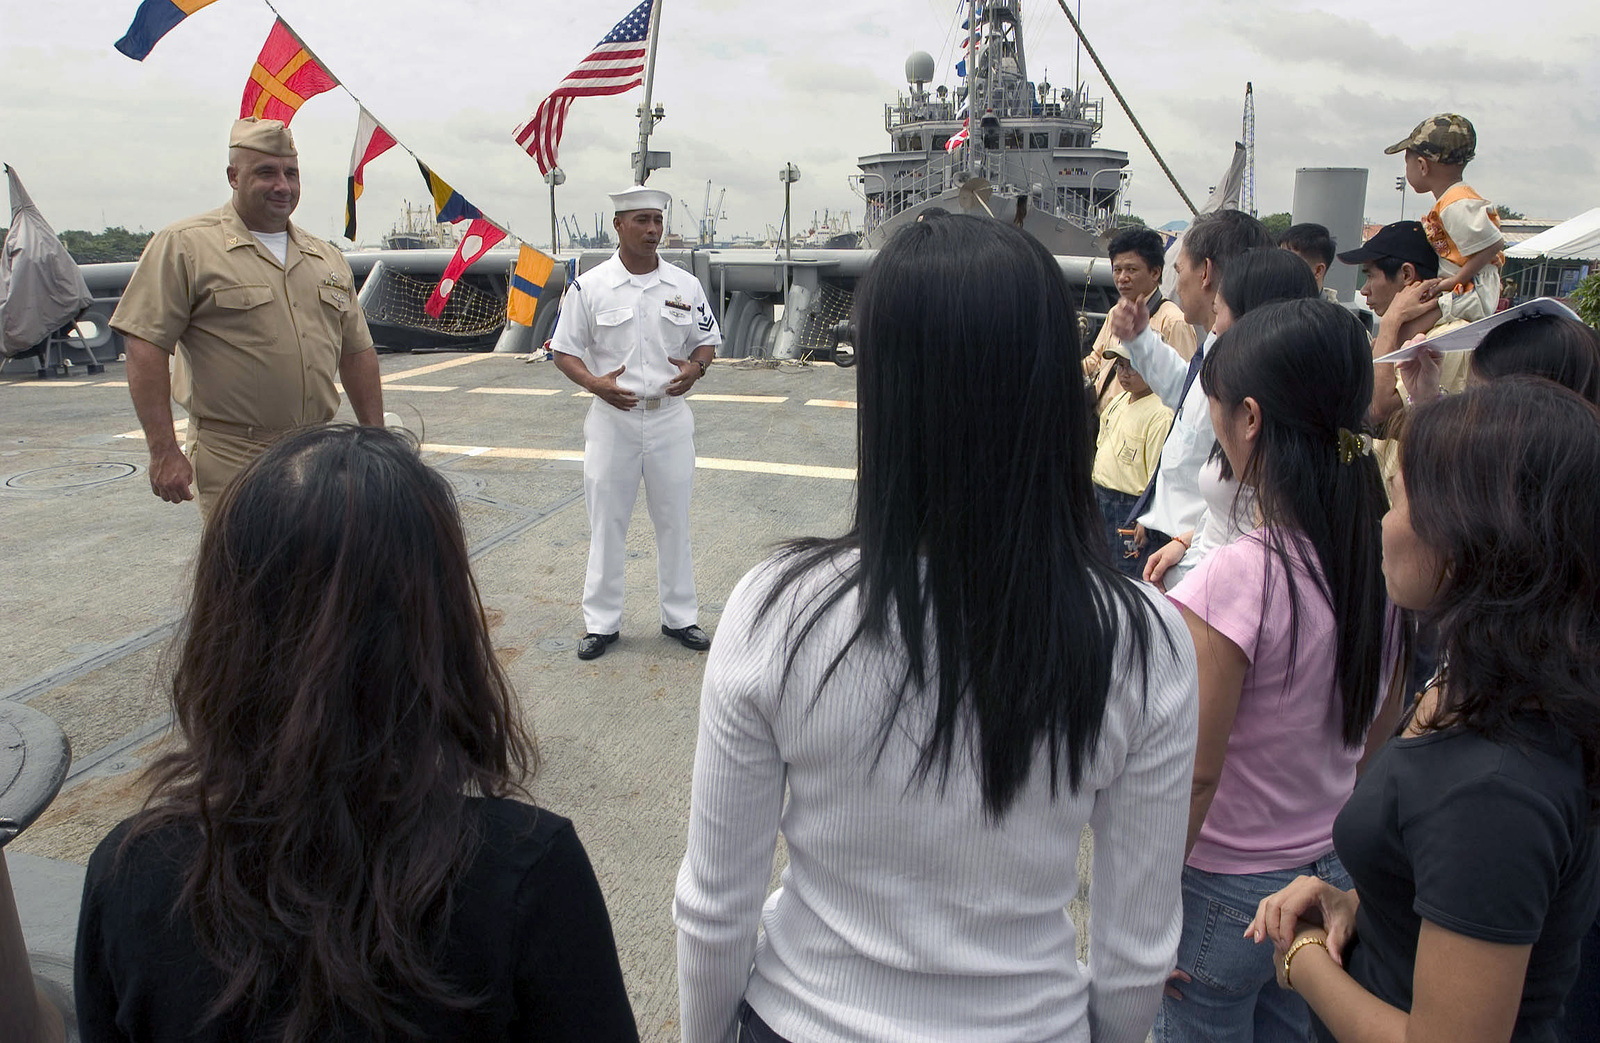 US Navy (USN) SENIOR CHIEF Navy Diver (NDCS) Michael Moser (left) and Quartermaster Second Class (QM2) Jason Tangalin (center) shows local visitors how diving operations are conducted from the fantail of the USN Safeguard Class Salvage Ship USS SALVOR (ARS 52) during their visit in Ho Chi Minh City, Vietnam (VNM). During their stay, the USN Sailors will interact with the Vietnamese people through a variety of events, including a community service project at a local orphanage. Visits to Vietnam by USN ships symbolize the continuation of relations between the two nations